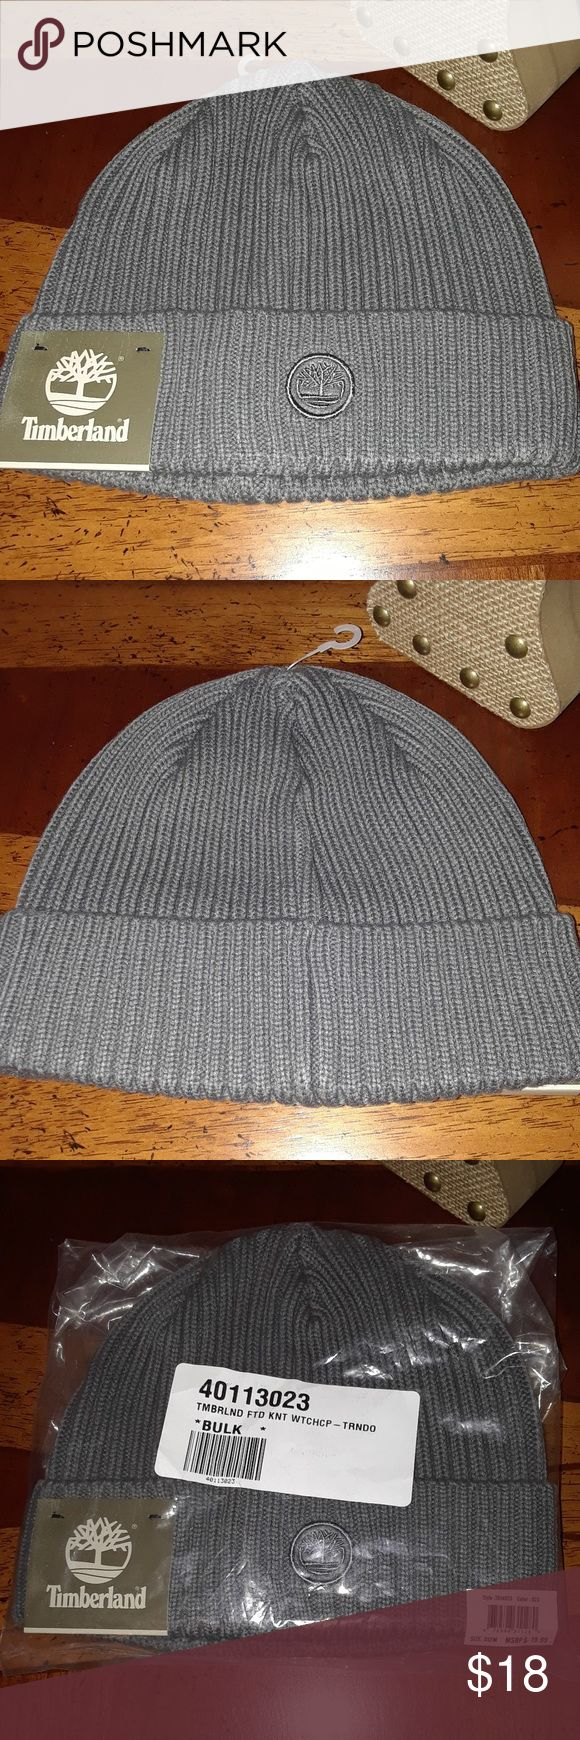 UNISEX Timberland Knit Hat Fitted grey Timberland Hat. One size fits most. Timberland Accessories Hats